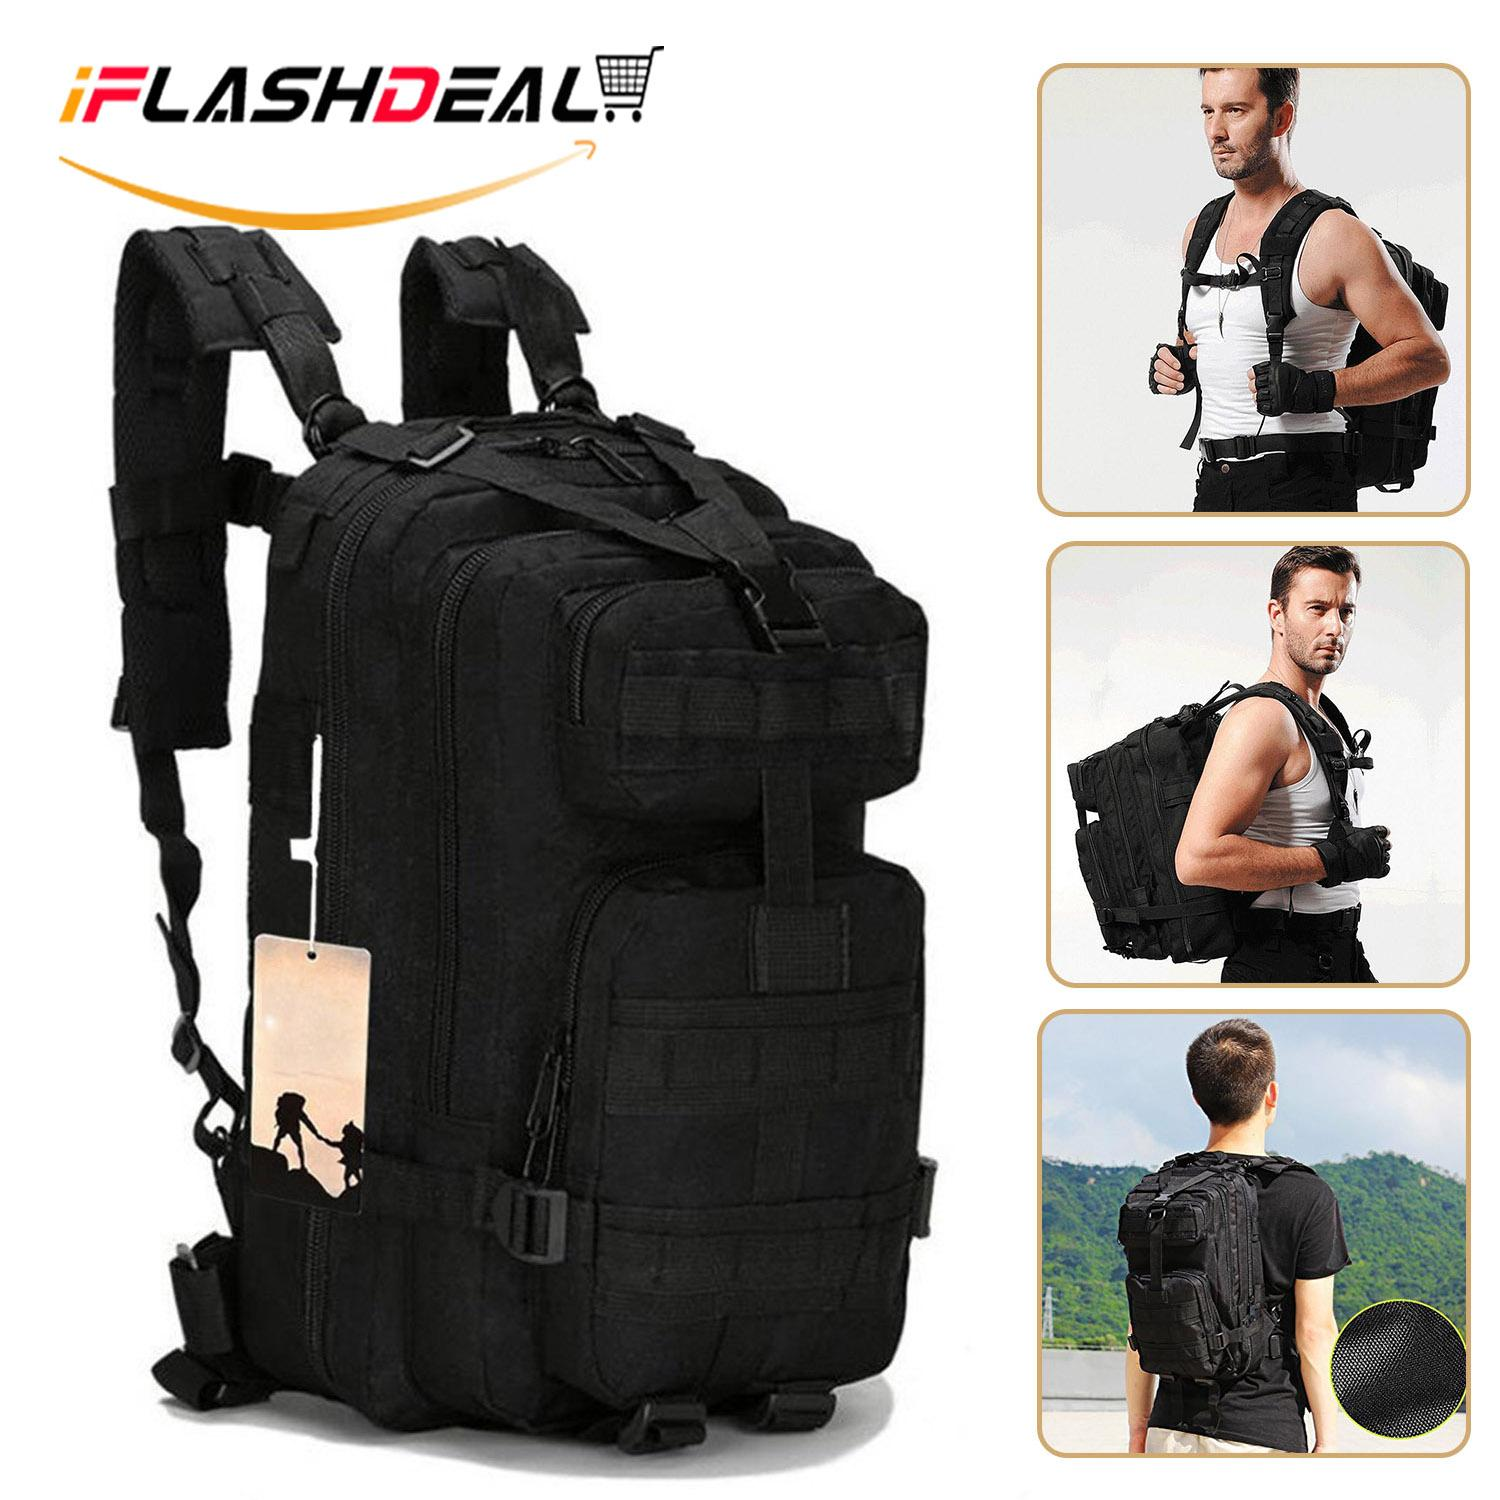 Iflashdeal Tactical Backpack, Military 3 Day Assault Pack Backpack For Camping Hiking And Trekking By Iflashdeal.